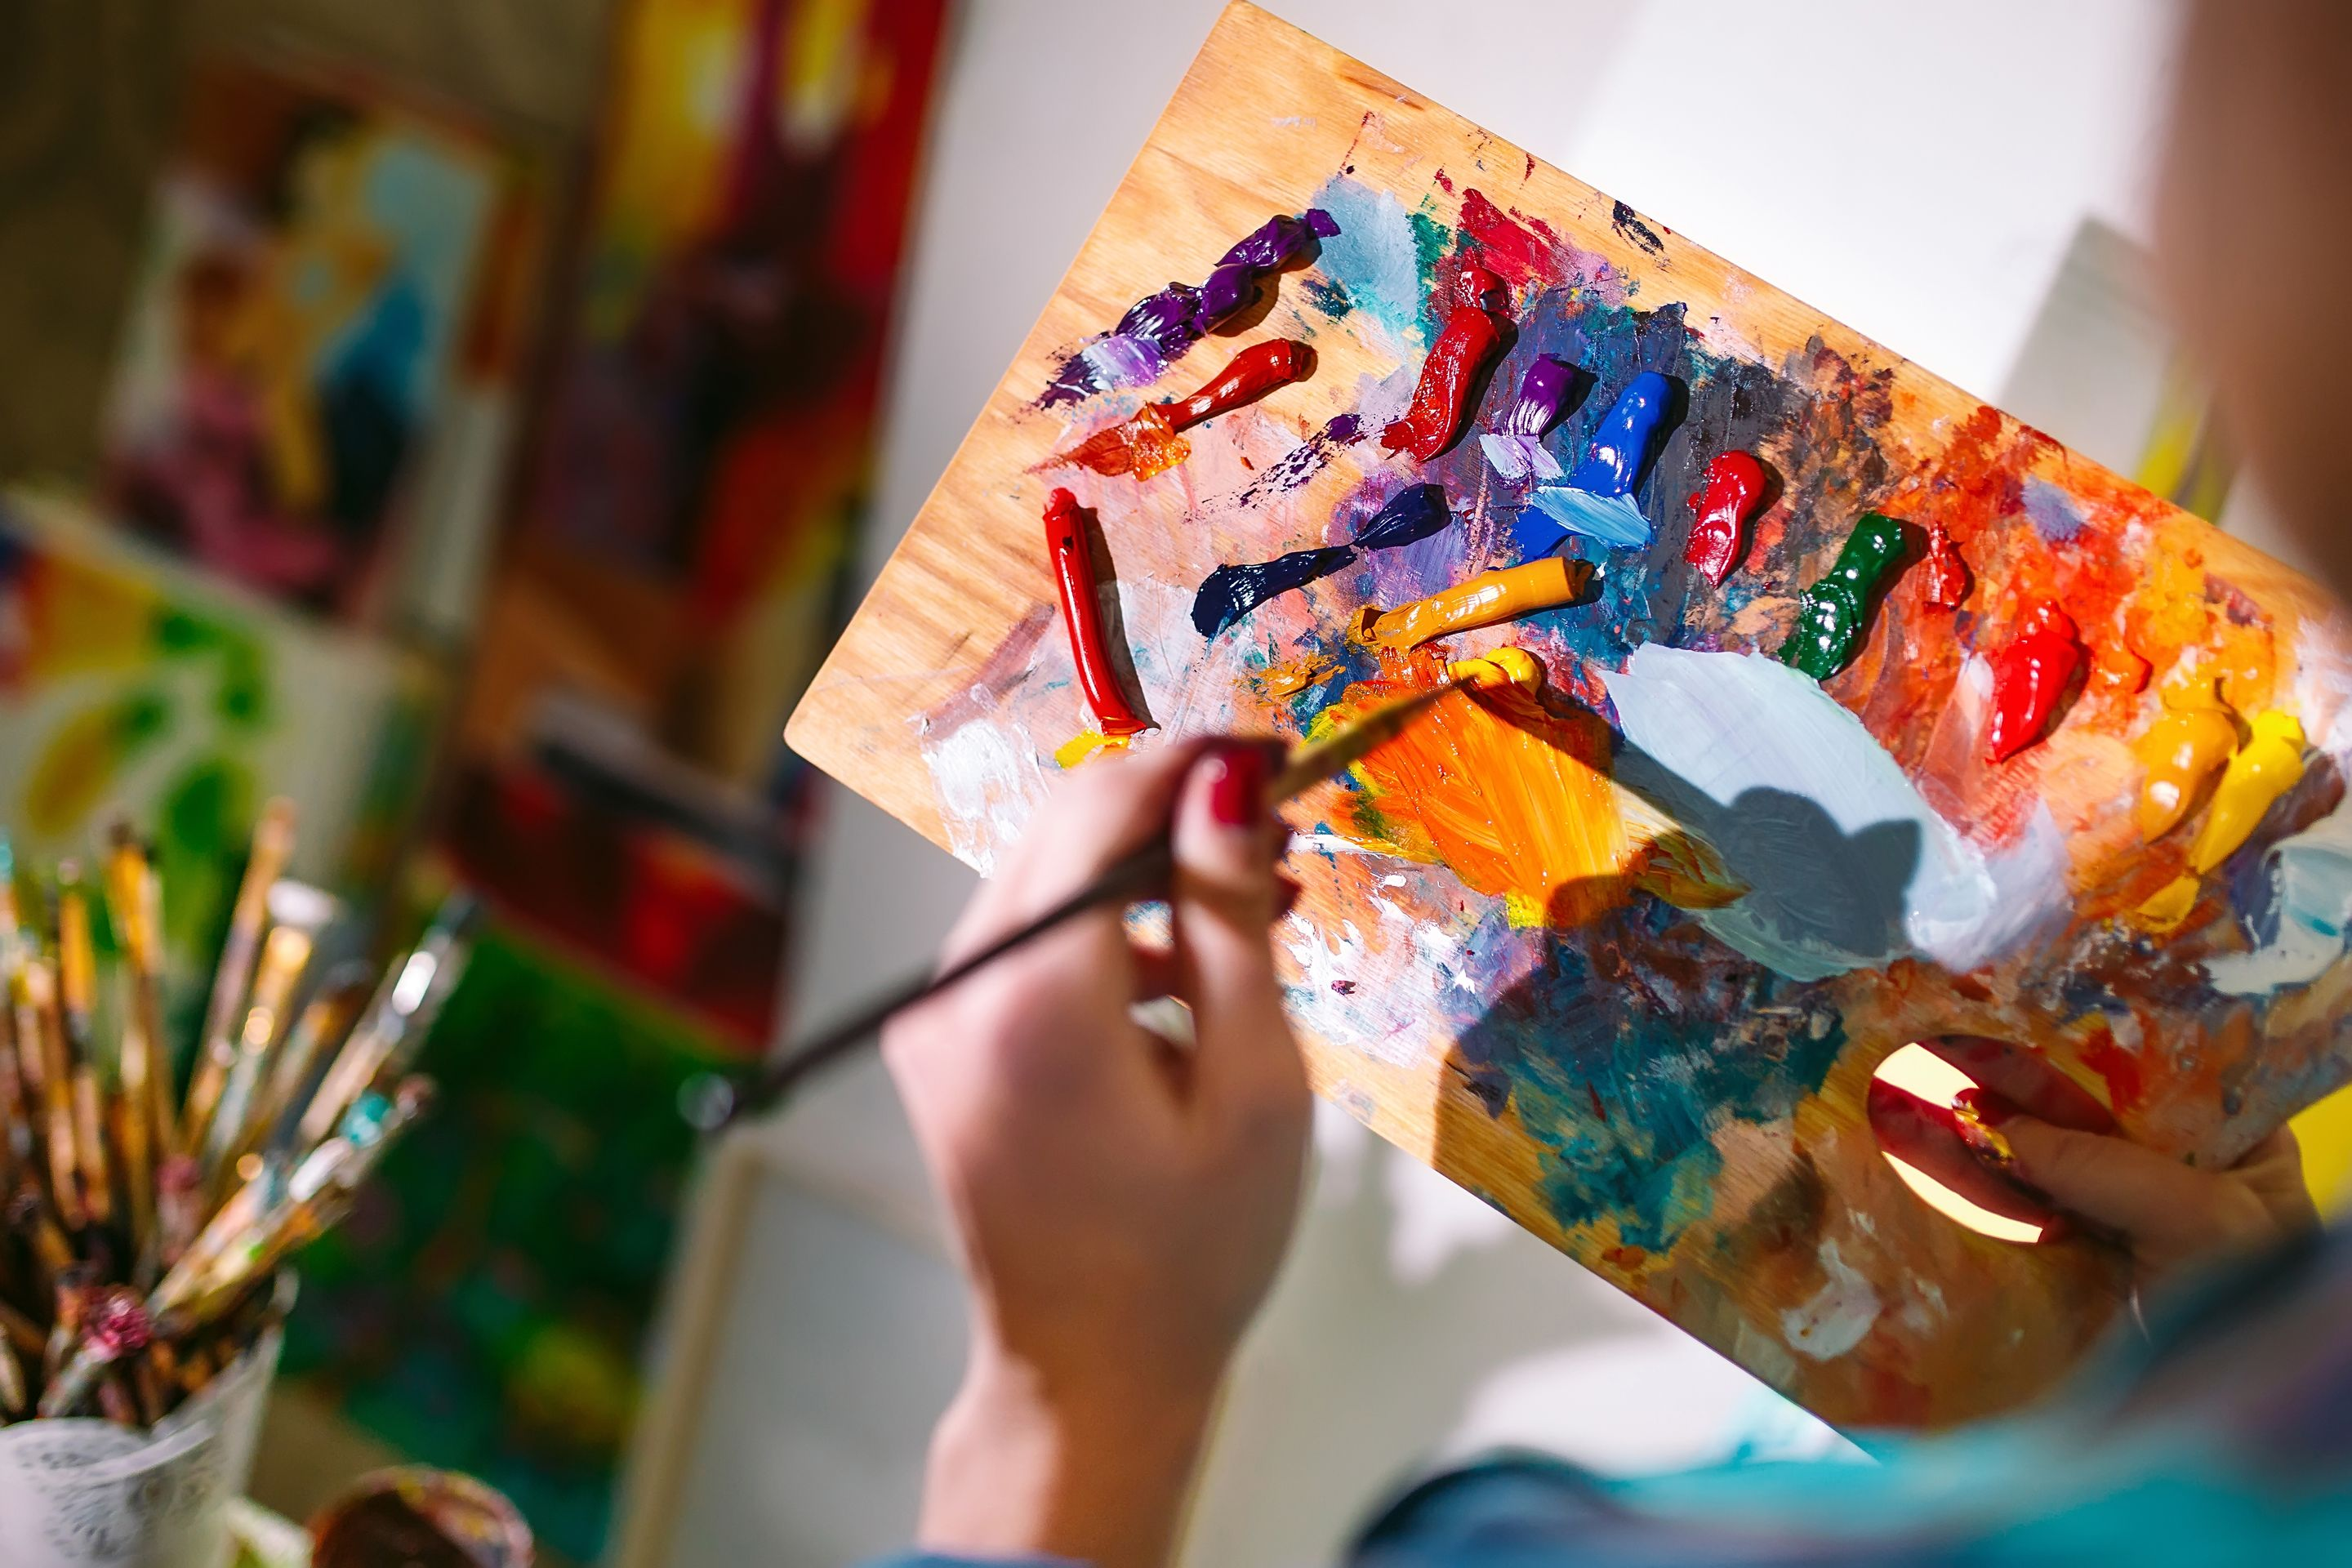 A close-up of a person holding a wooden palette with a variety of acrylic paints on it